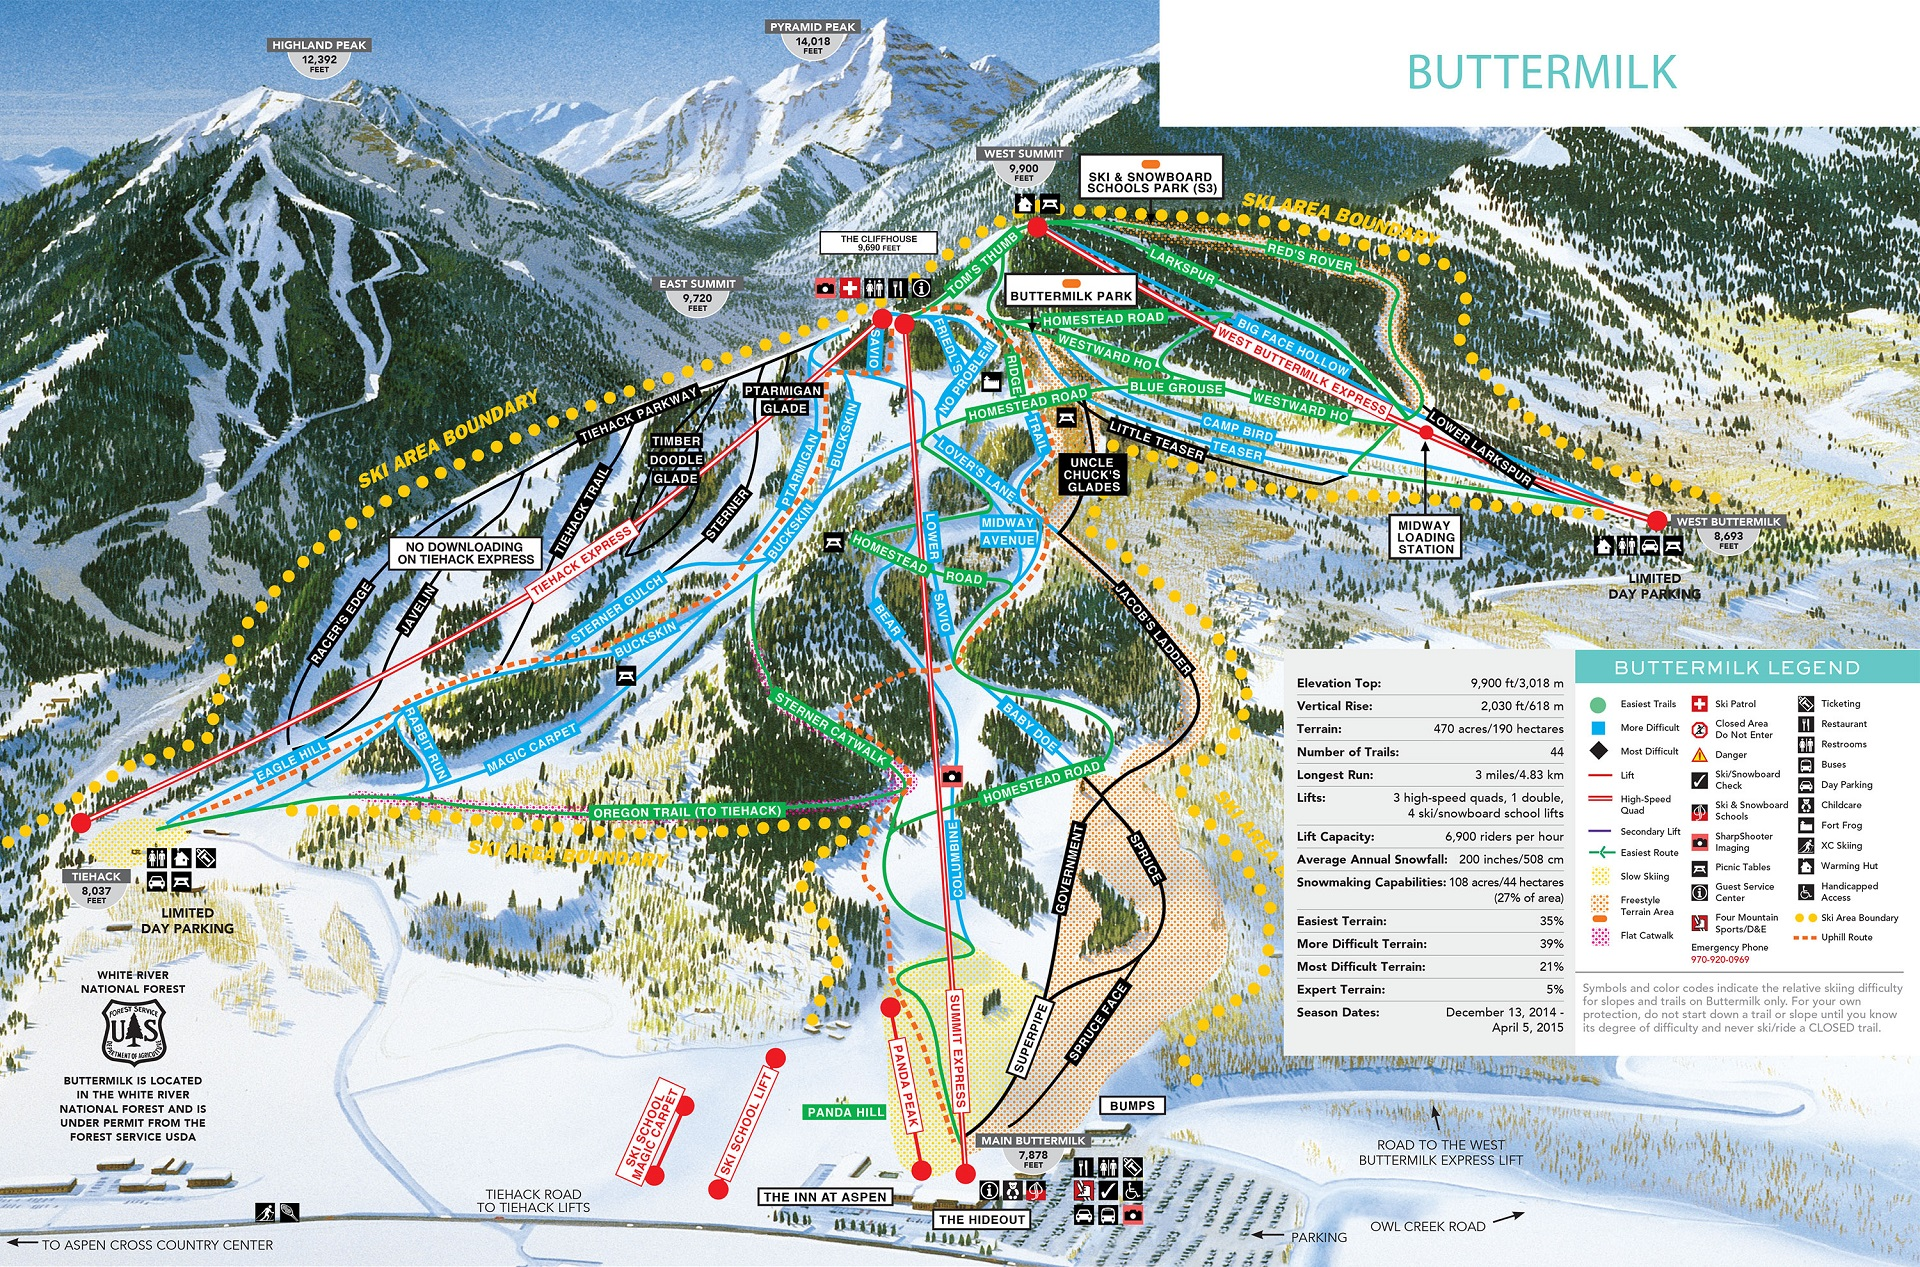 La carte du domaine skiable de Buttermilk